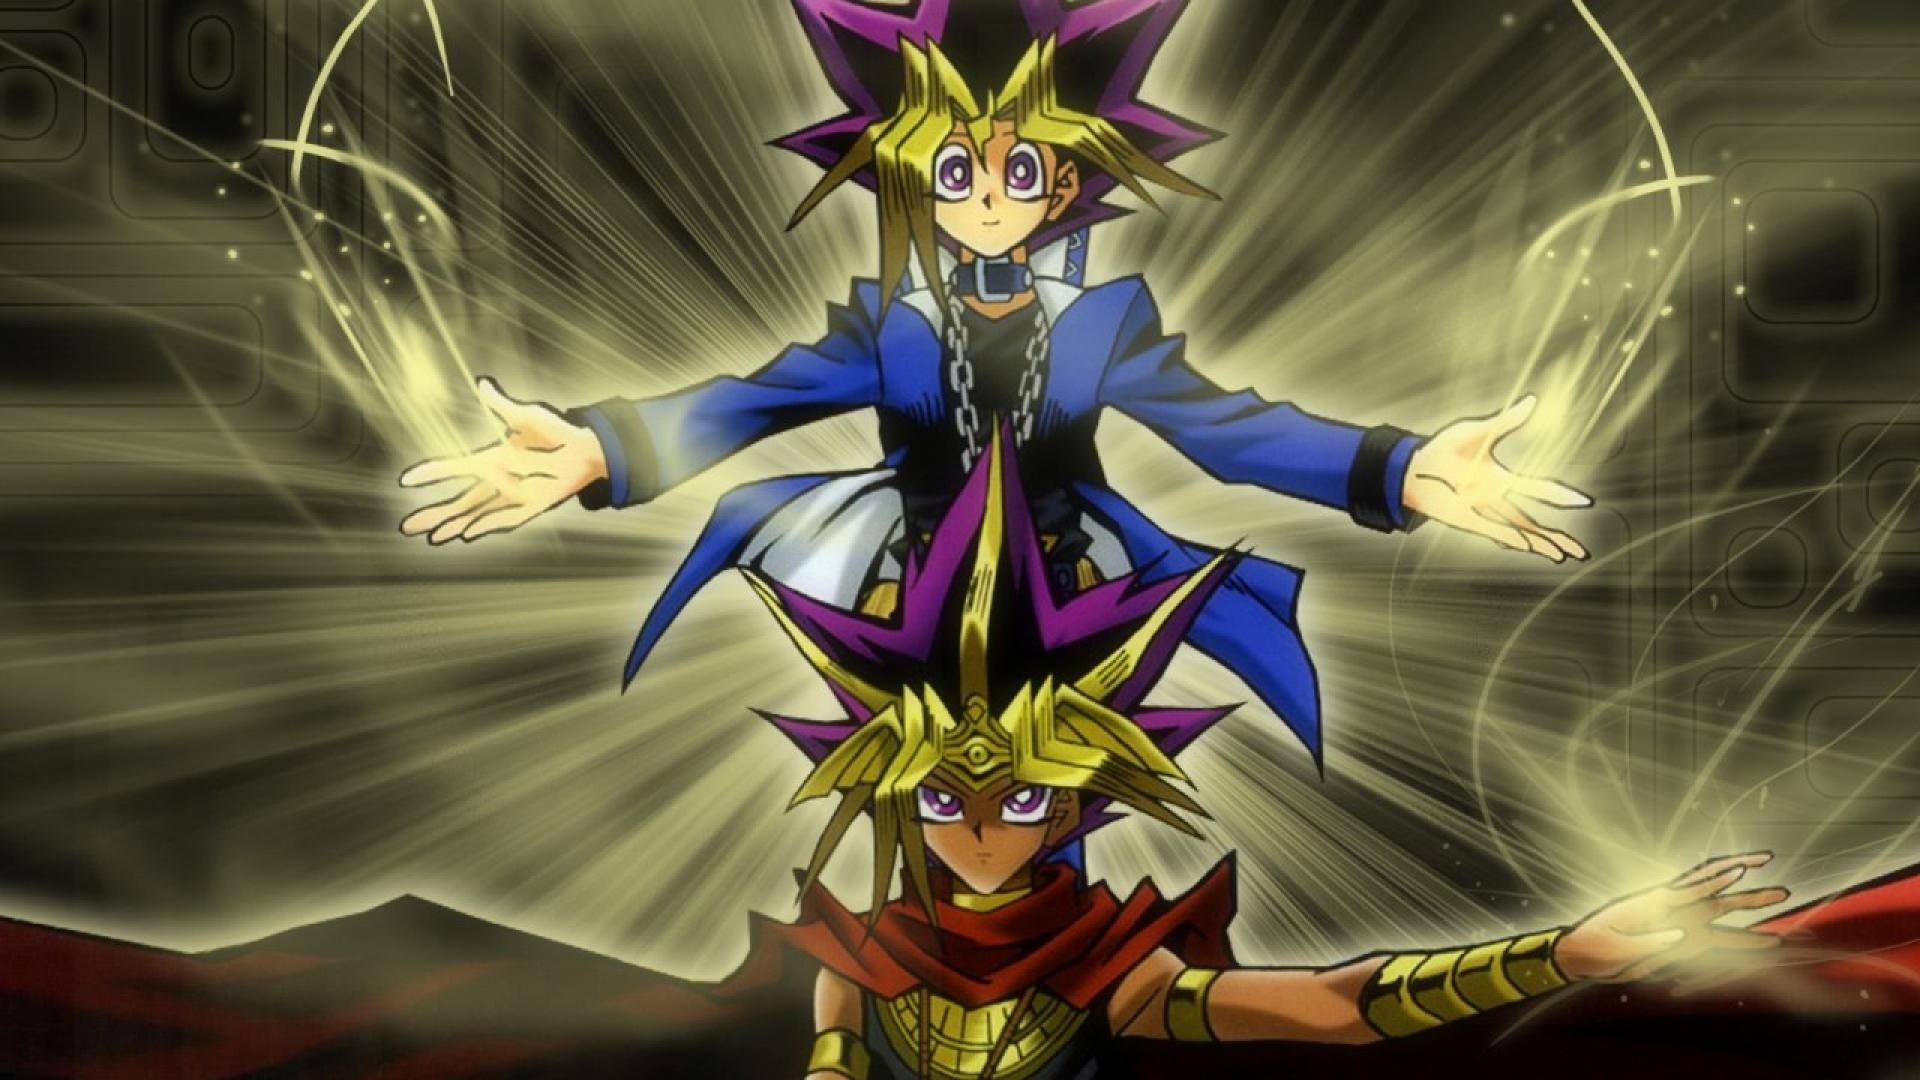 Free Download Yugioh Backgrounds 1920x1080 For Your Desktop